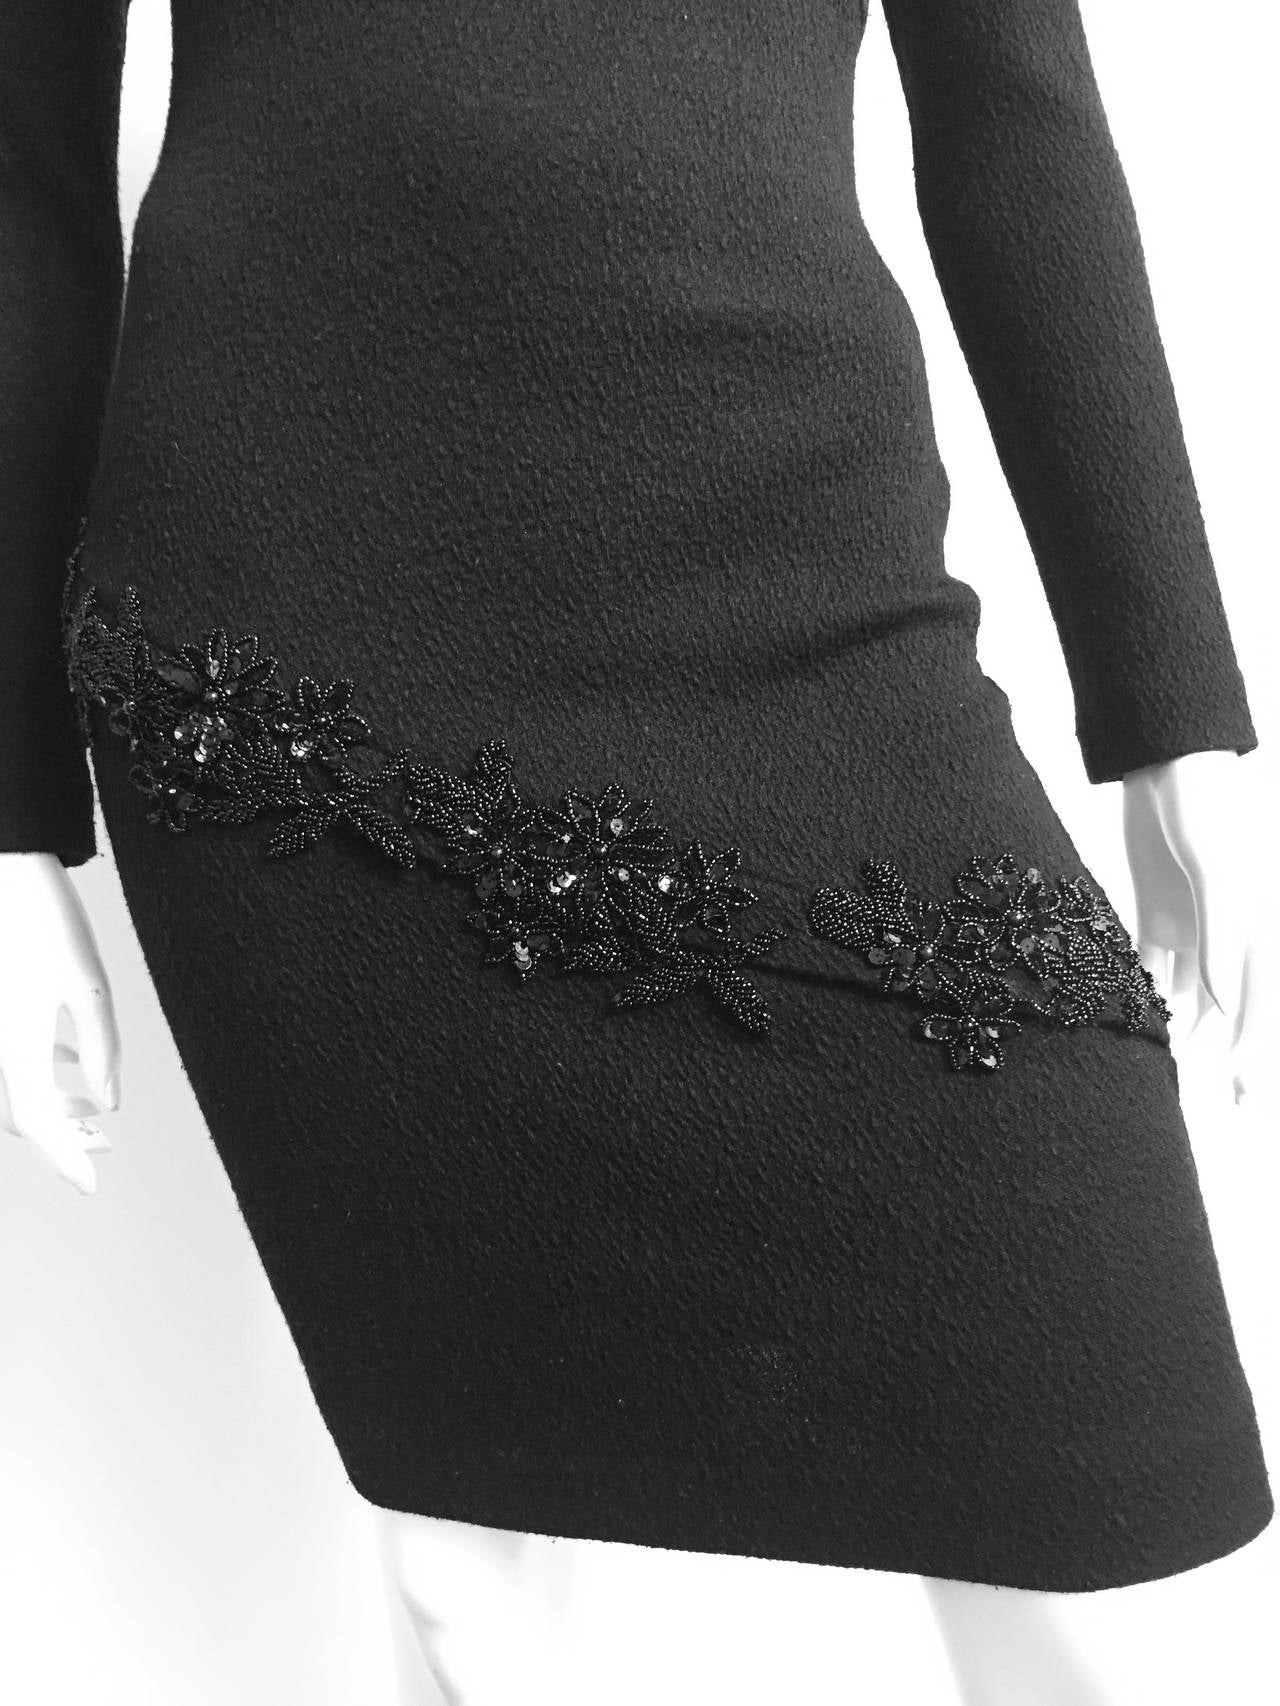 Patrick Kelly 1980s Black Evening Dress Size Small. 4